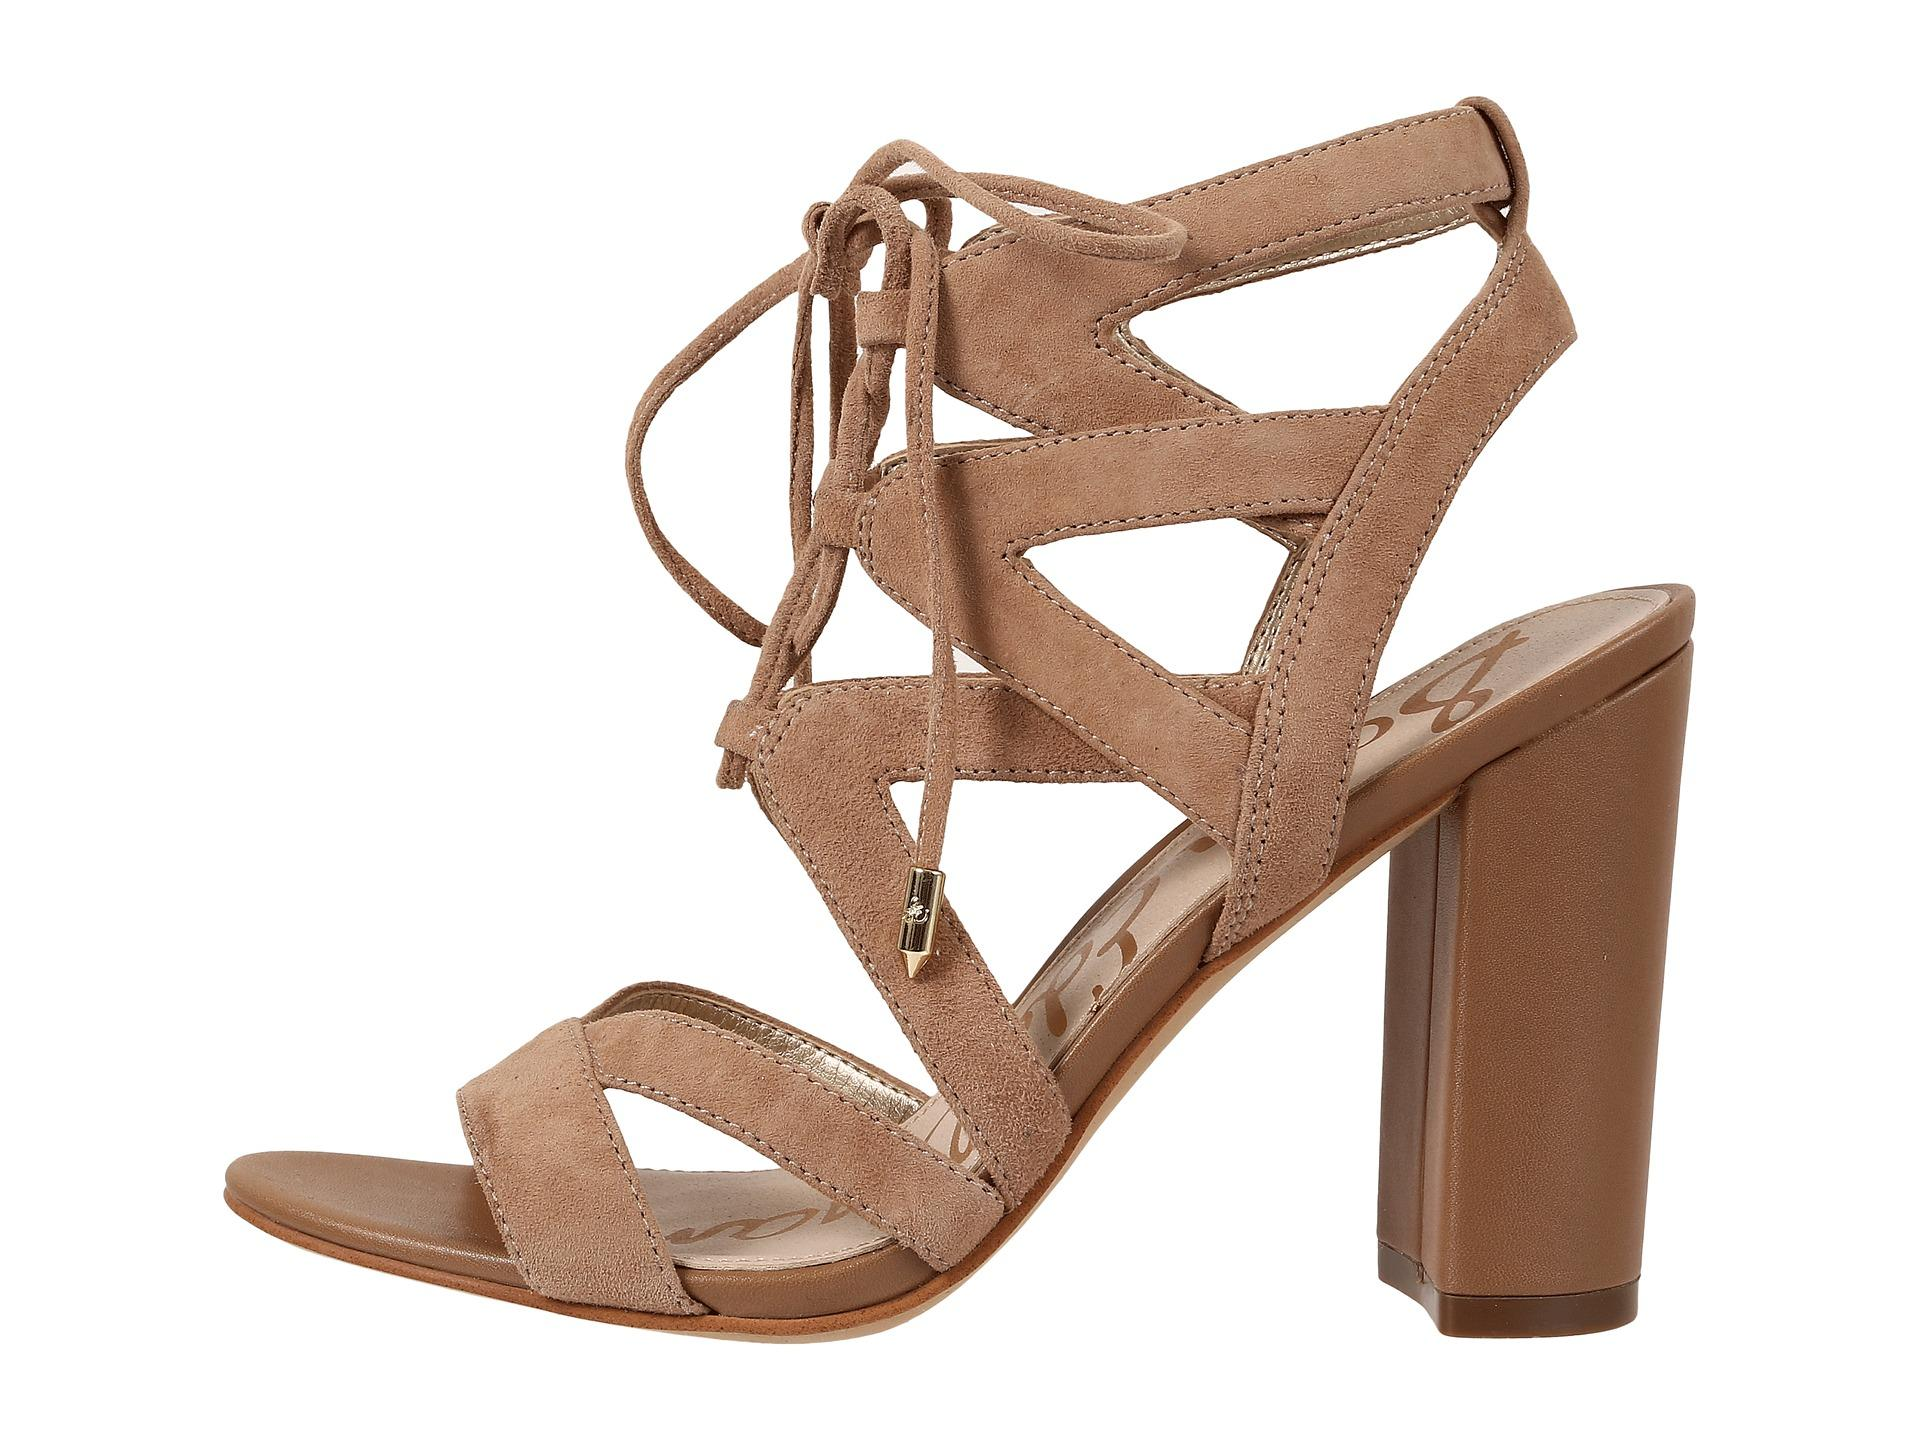 Sam Edelman Yardley Cut Out Suede Sandals In Natural Lyst